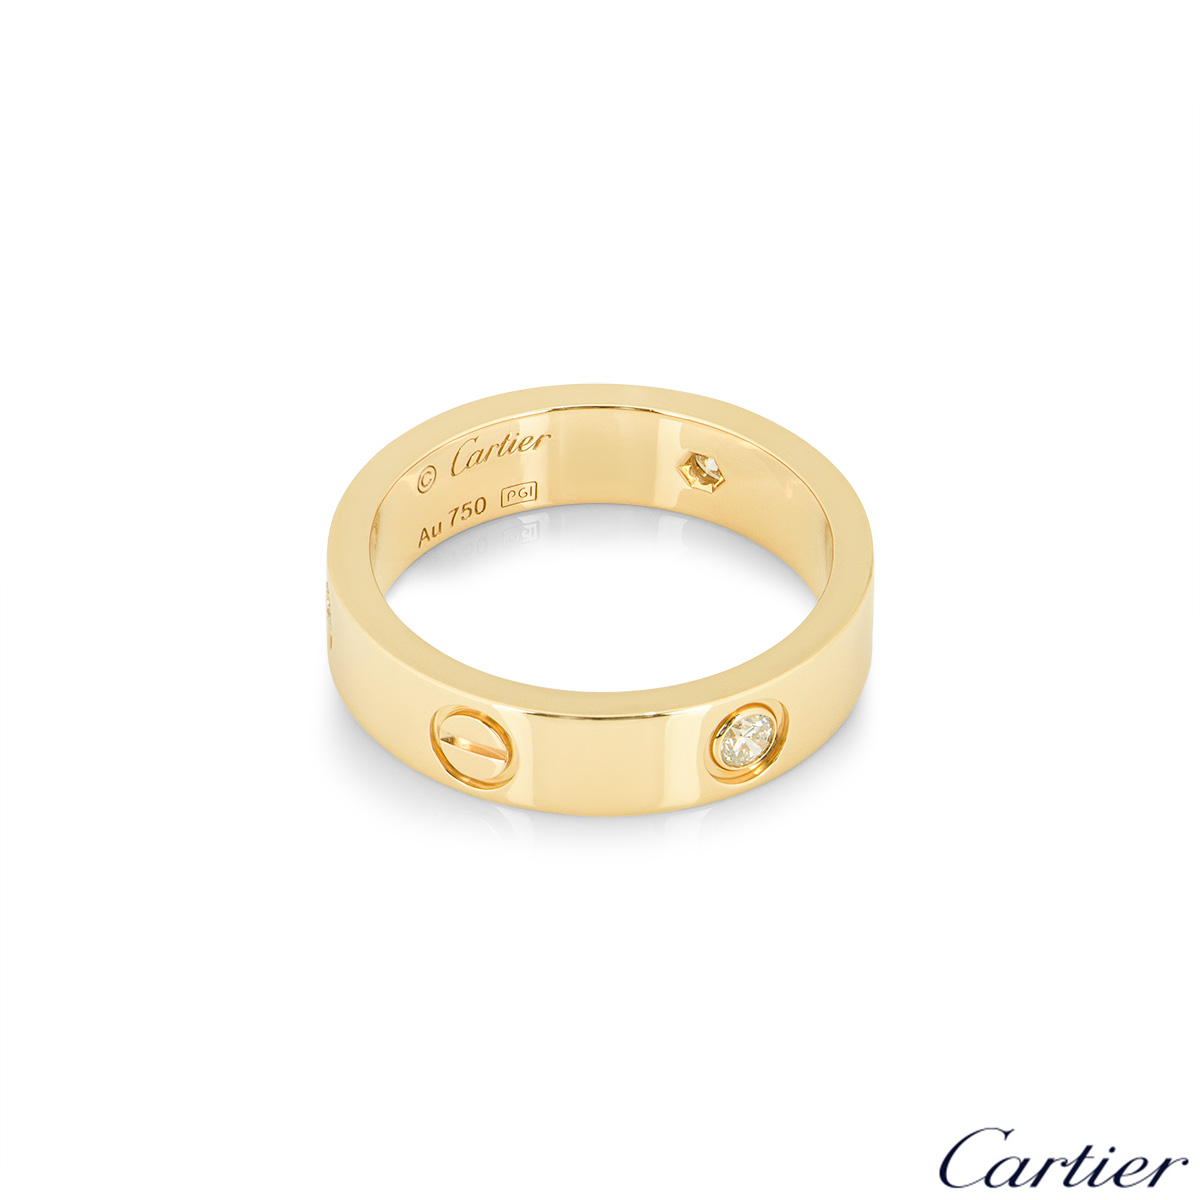 Cartier Yellow Gold Half Diamond Love Ring Size 52 B4032400